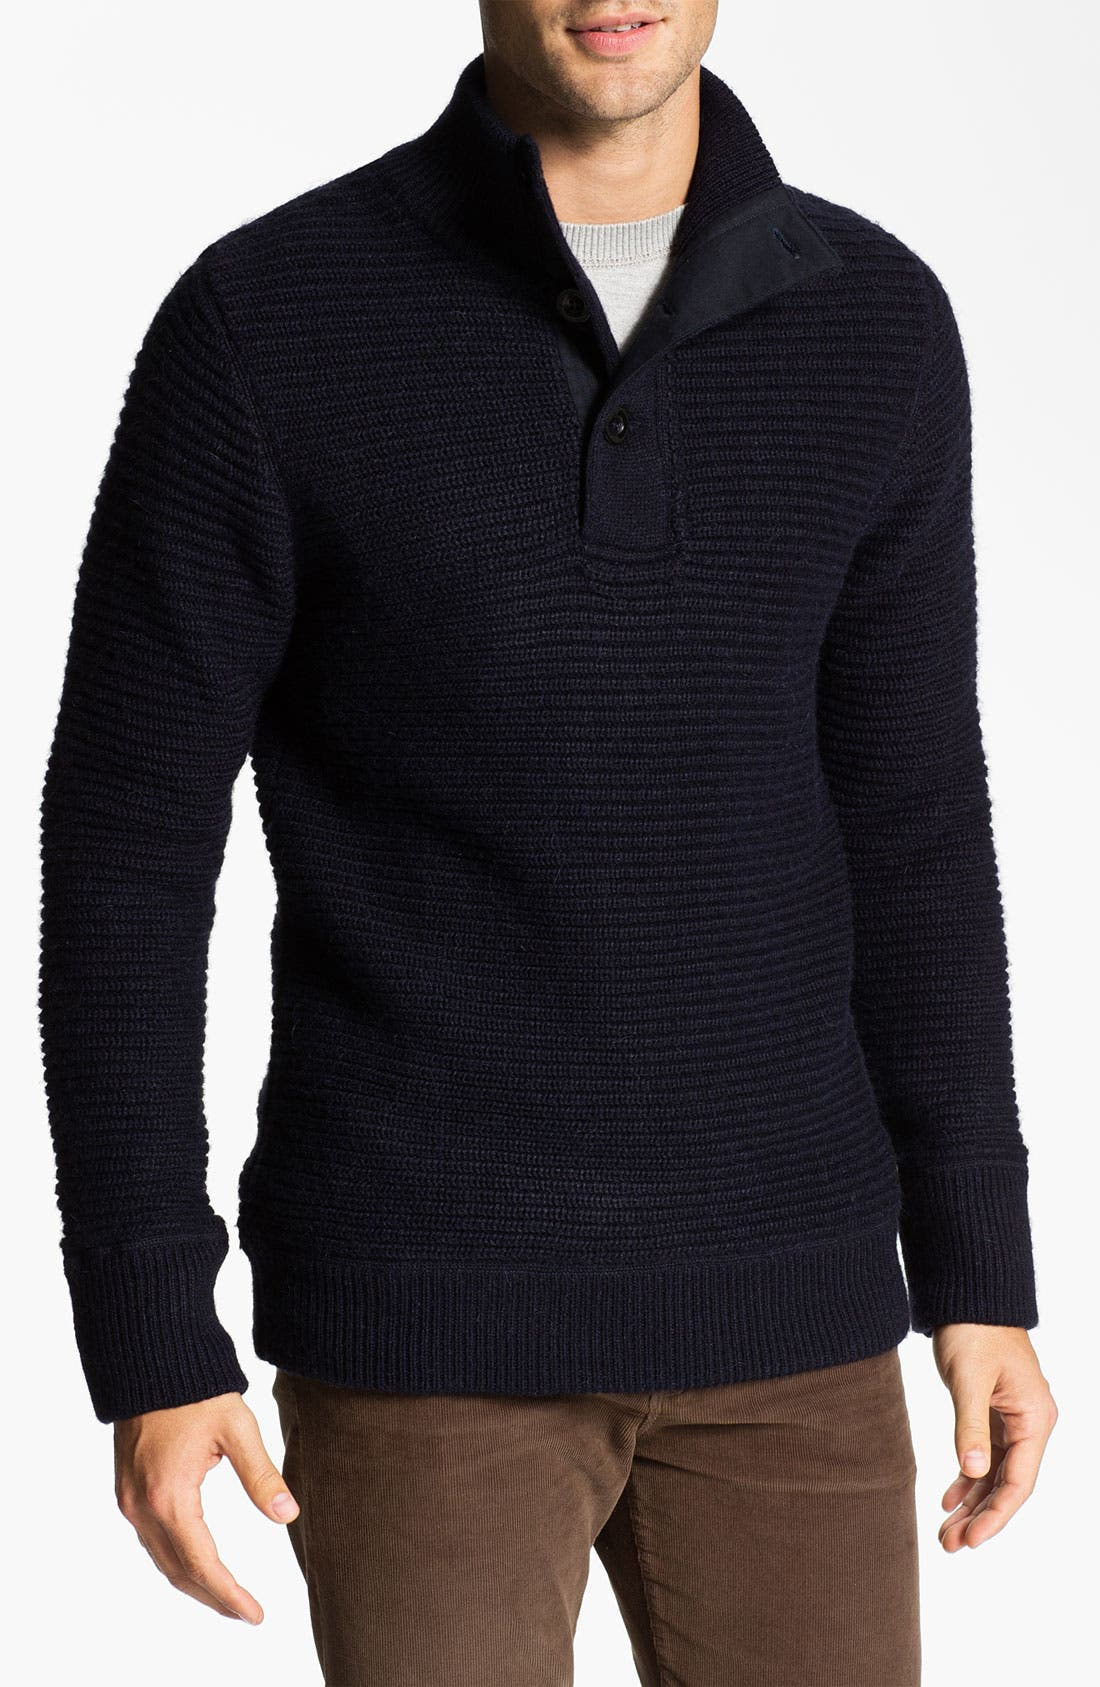 Main Image - Relwen Mock Neck Alpaca Blend Sweater